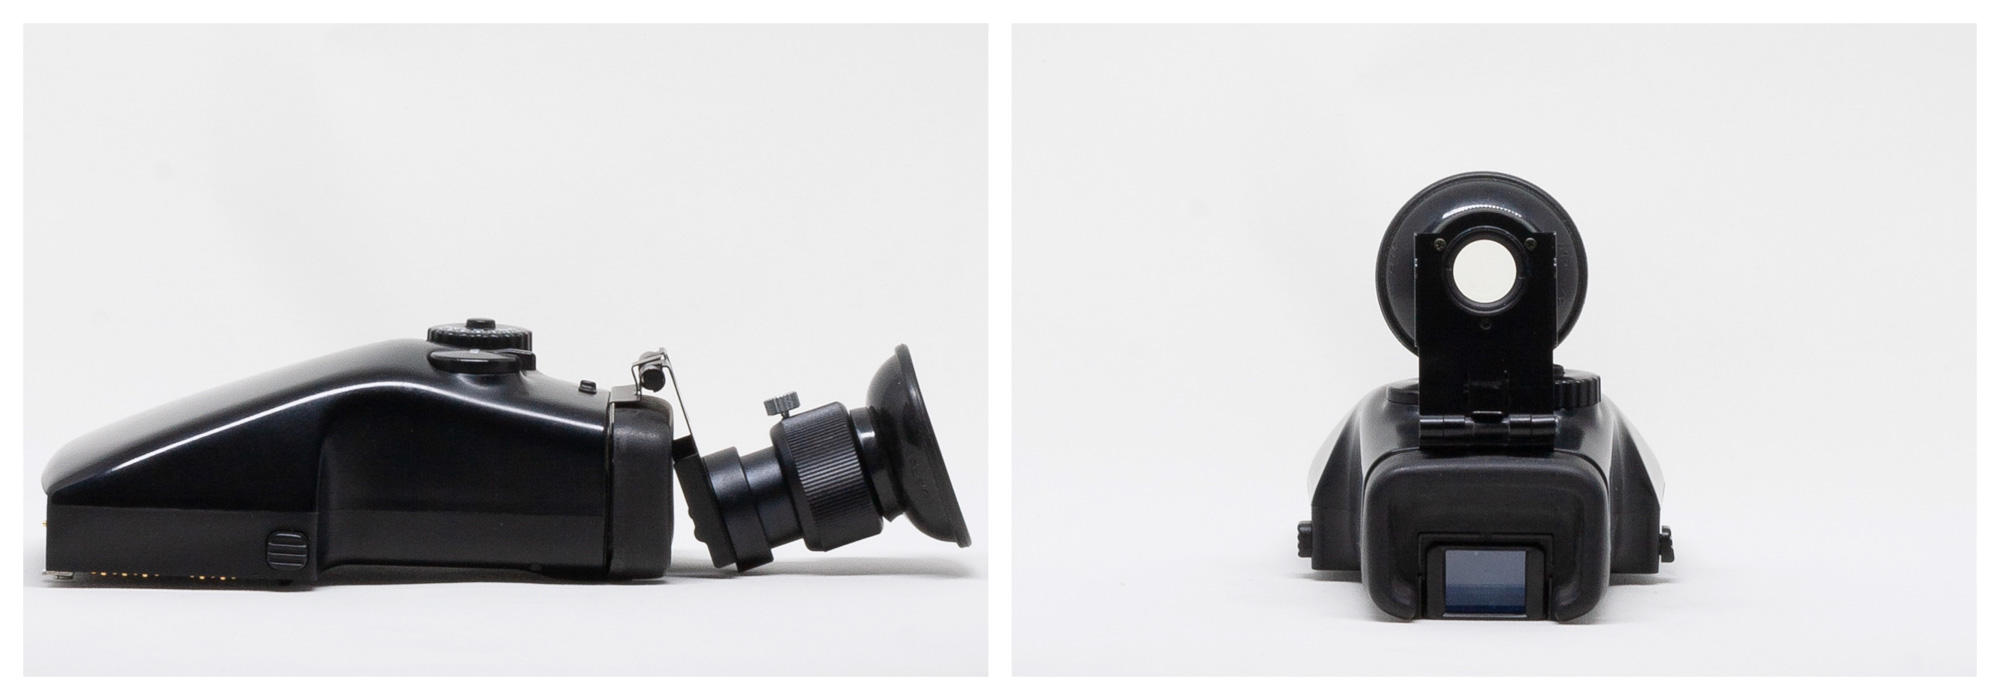 Mamiya 645 AE Prism Finder AE401 with magnifying loupe attached